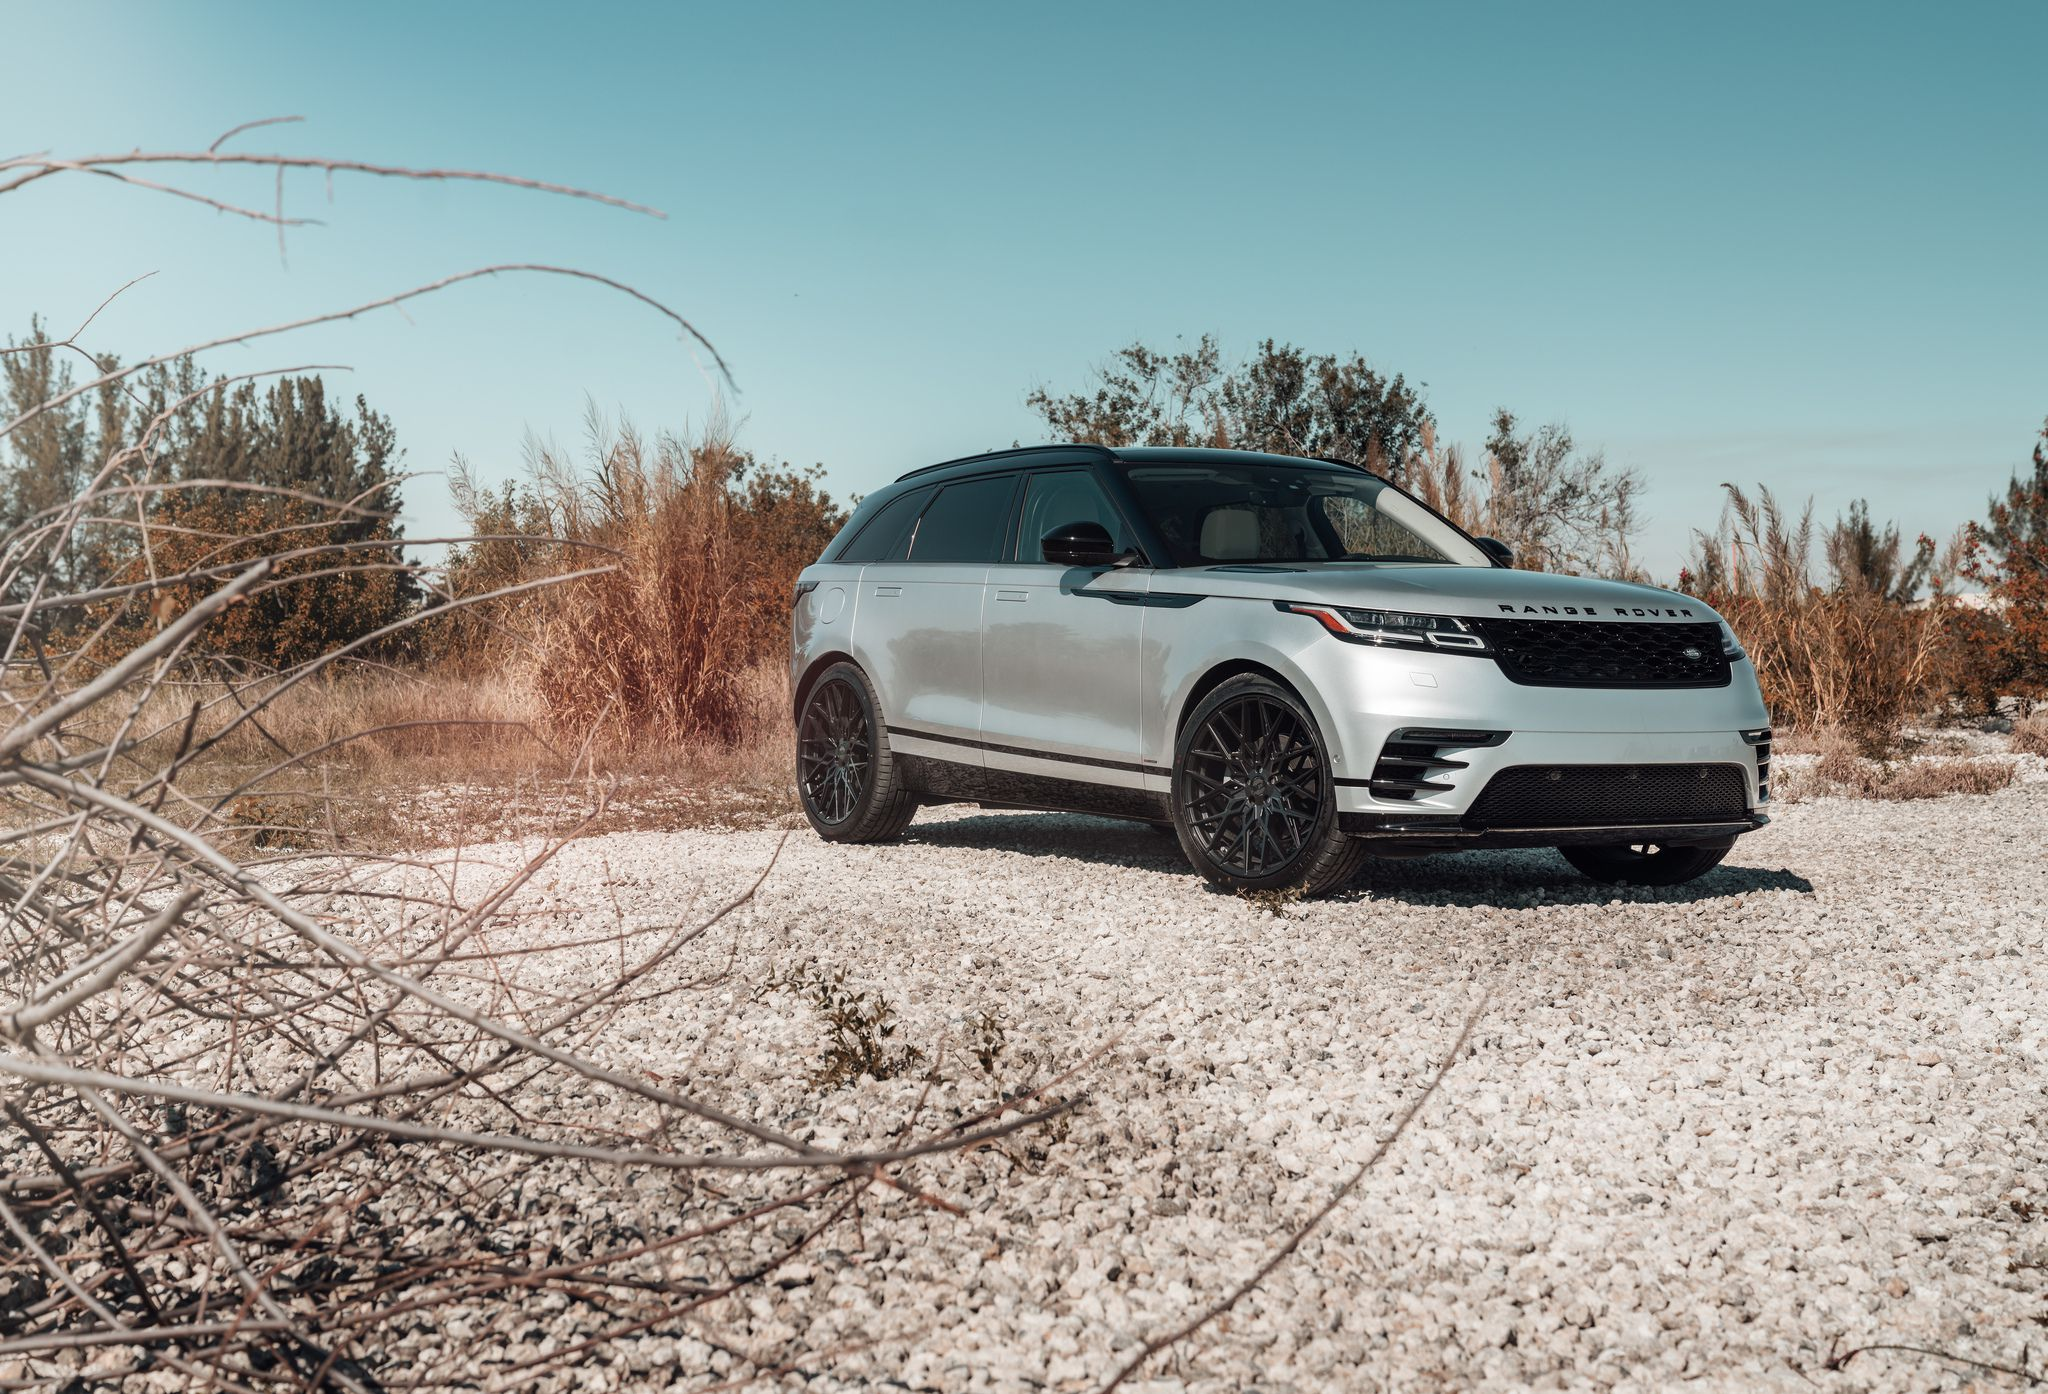 Photo 06: Range Rover Velar